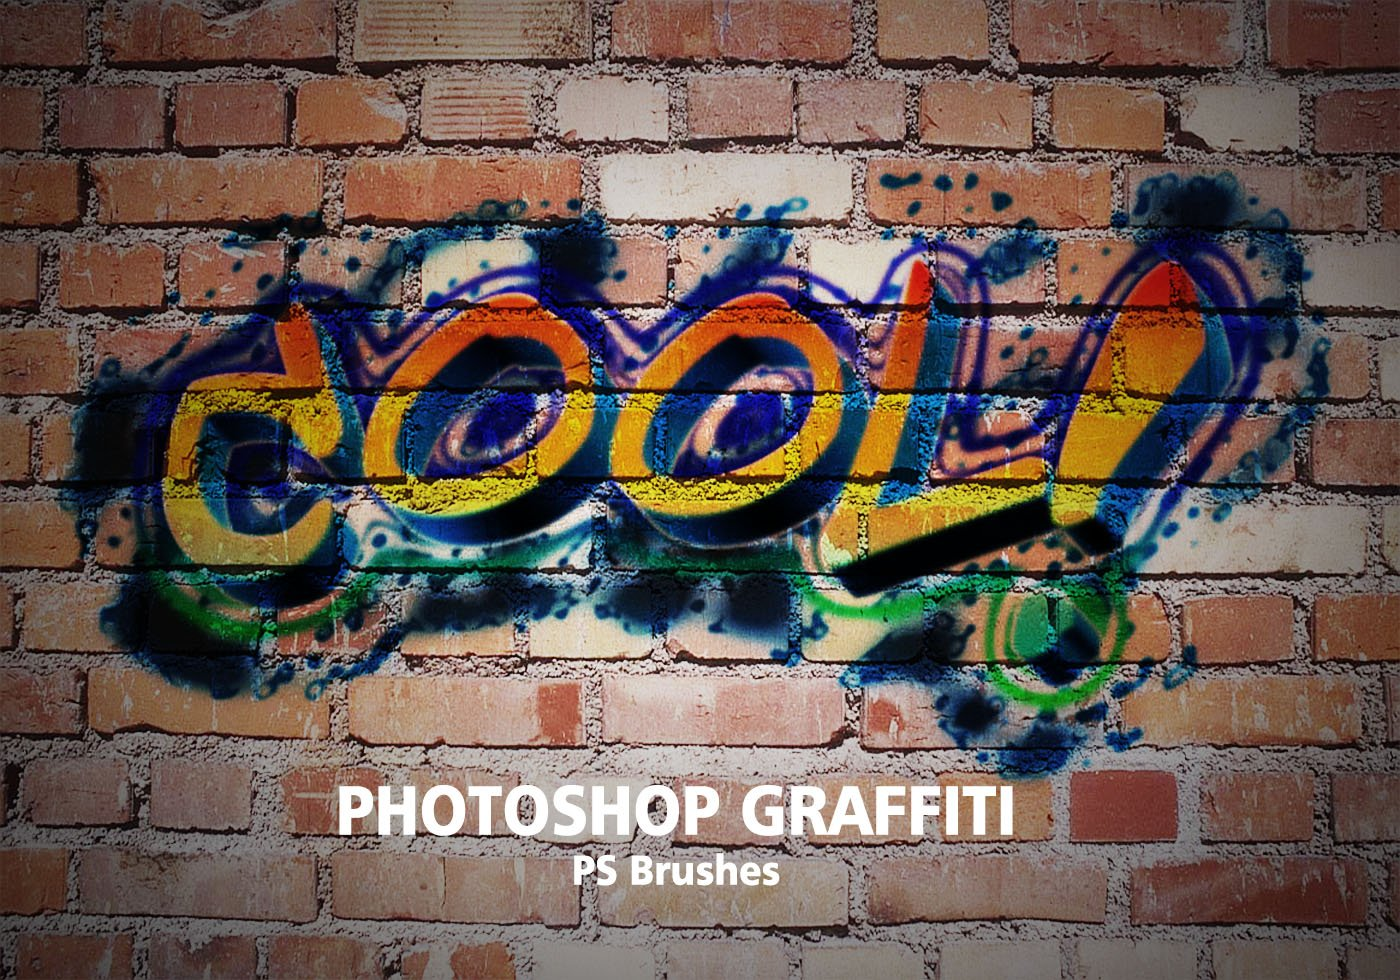 Graffiti photoshop 28 images how to add graffiti text effect graffiti photoshop 20 graffiti ps brushes abr vol 1 free photoshop brushes baditri Gallery